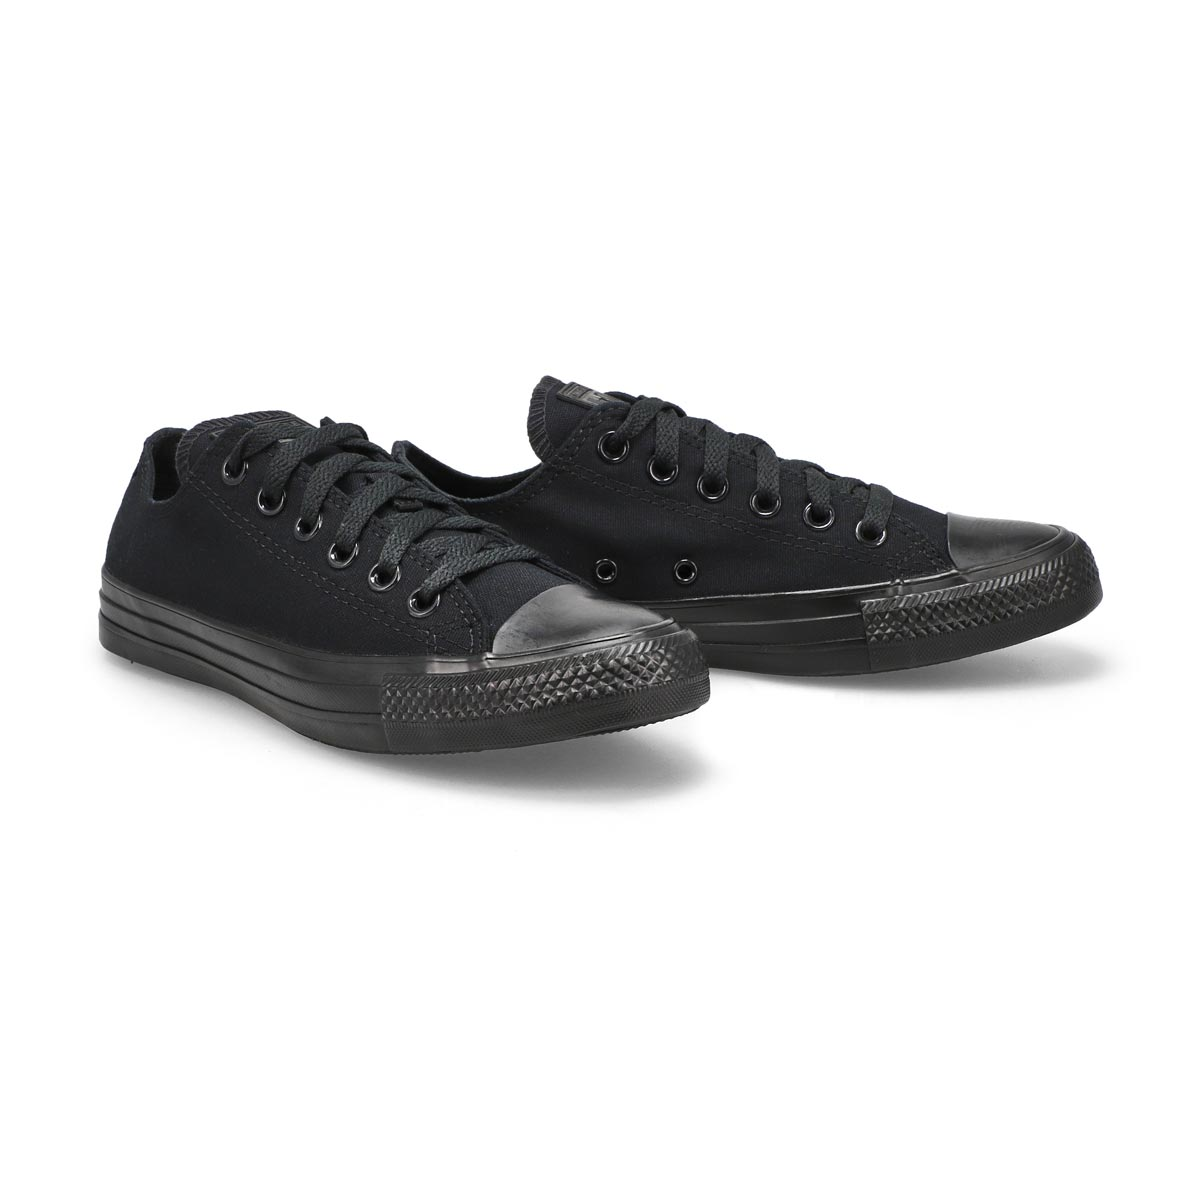 Lds CT All Star Core Ox blk mono sneakr